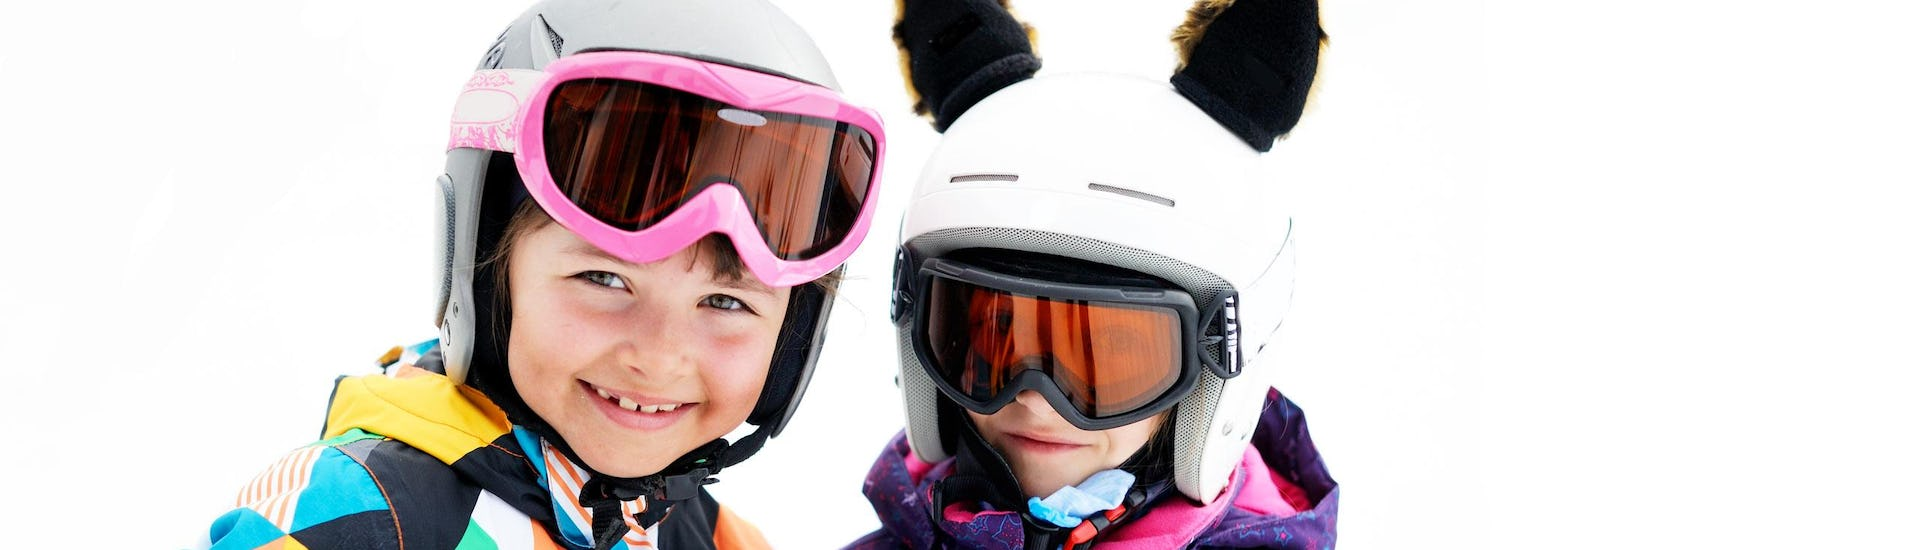 Two young children smiling at the camera during one of the Ski Instructor Private for Kids - All Levels organised by Happy Ski Sierra Nevada.